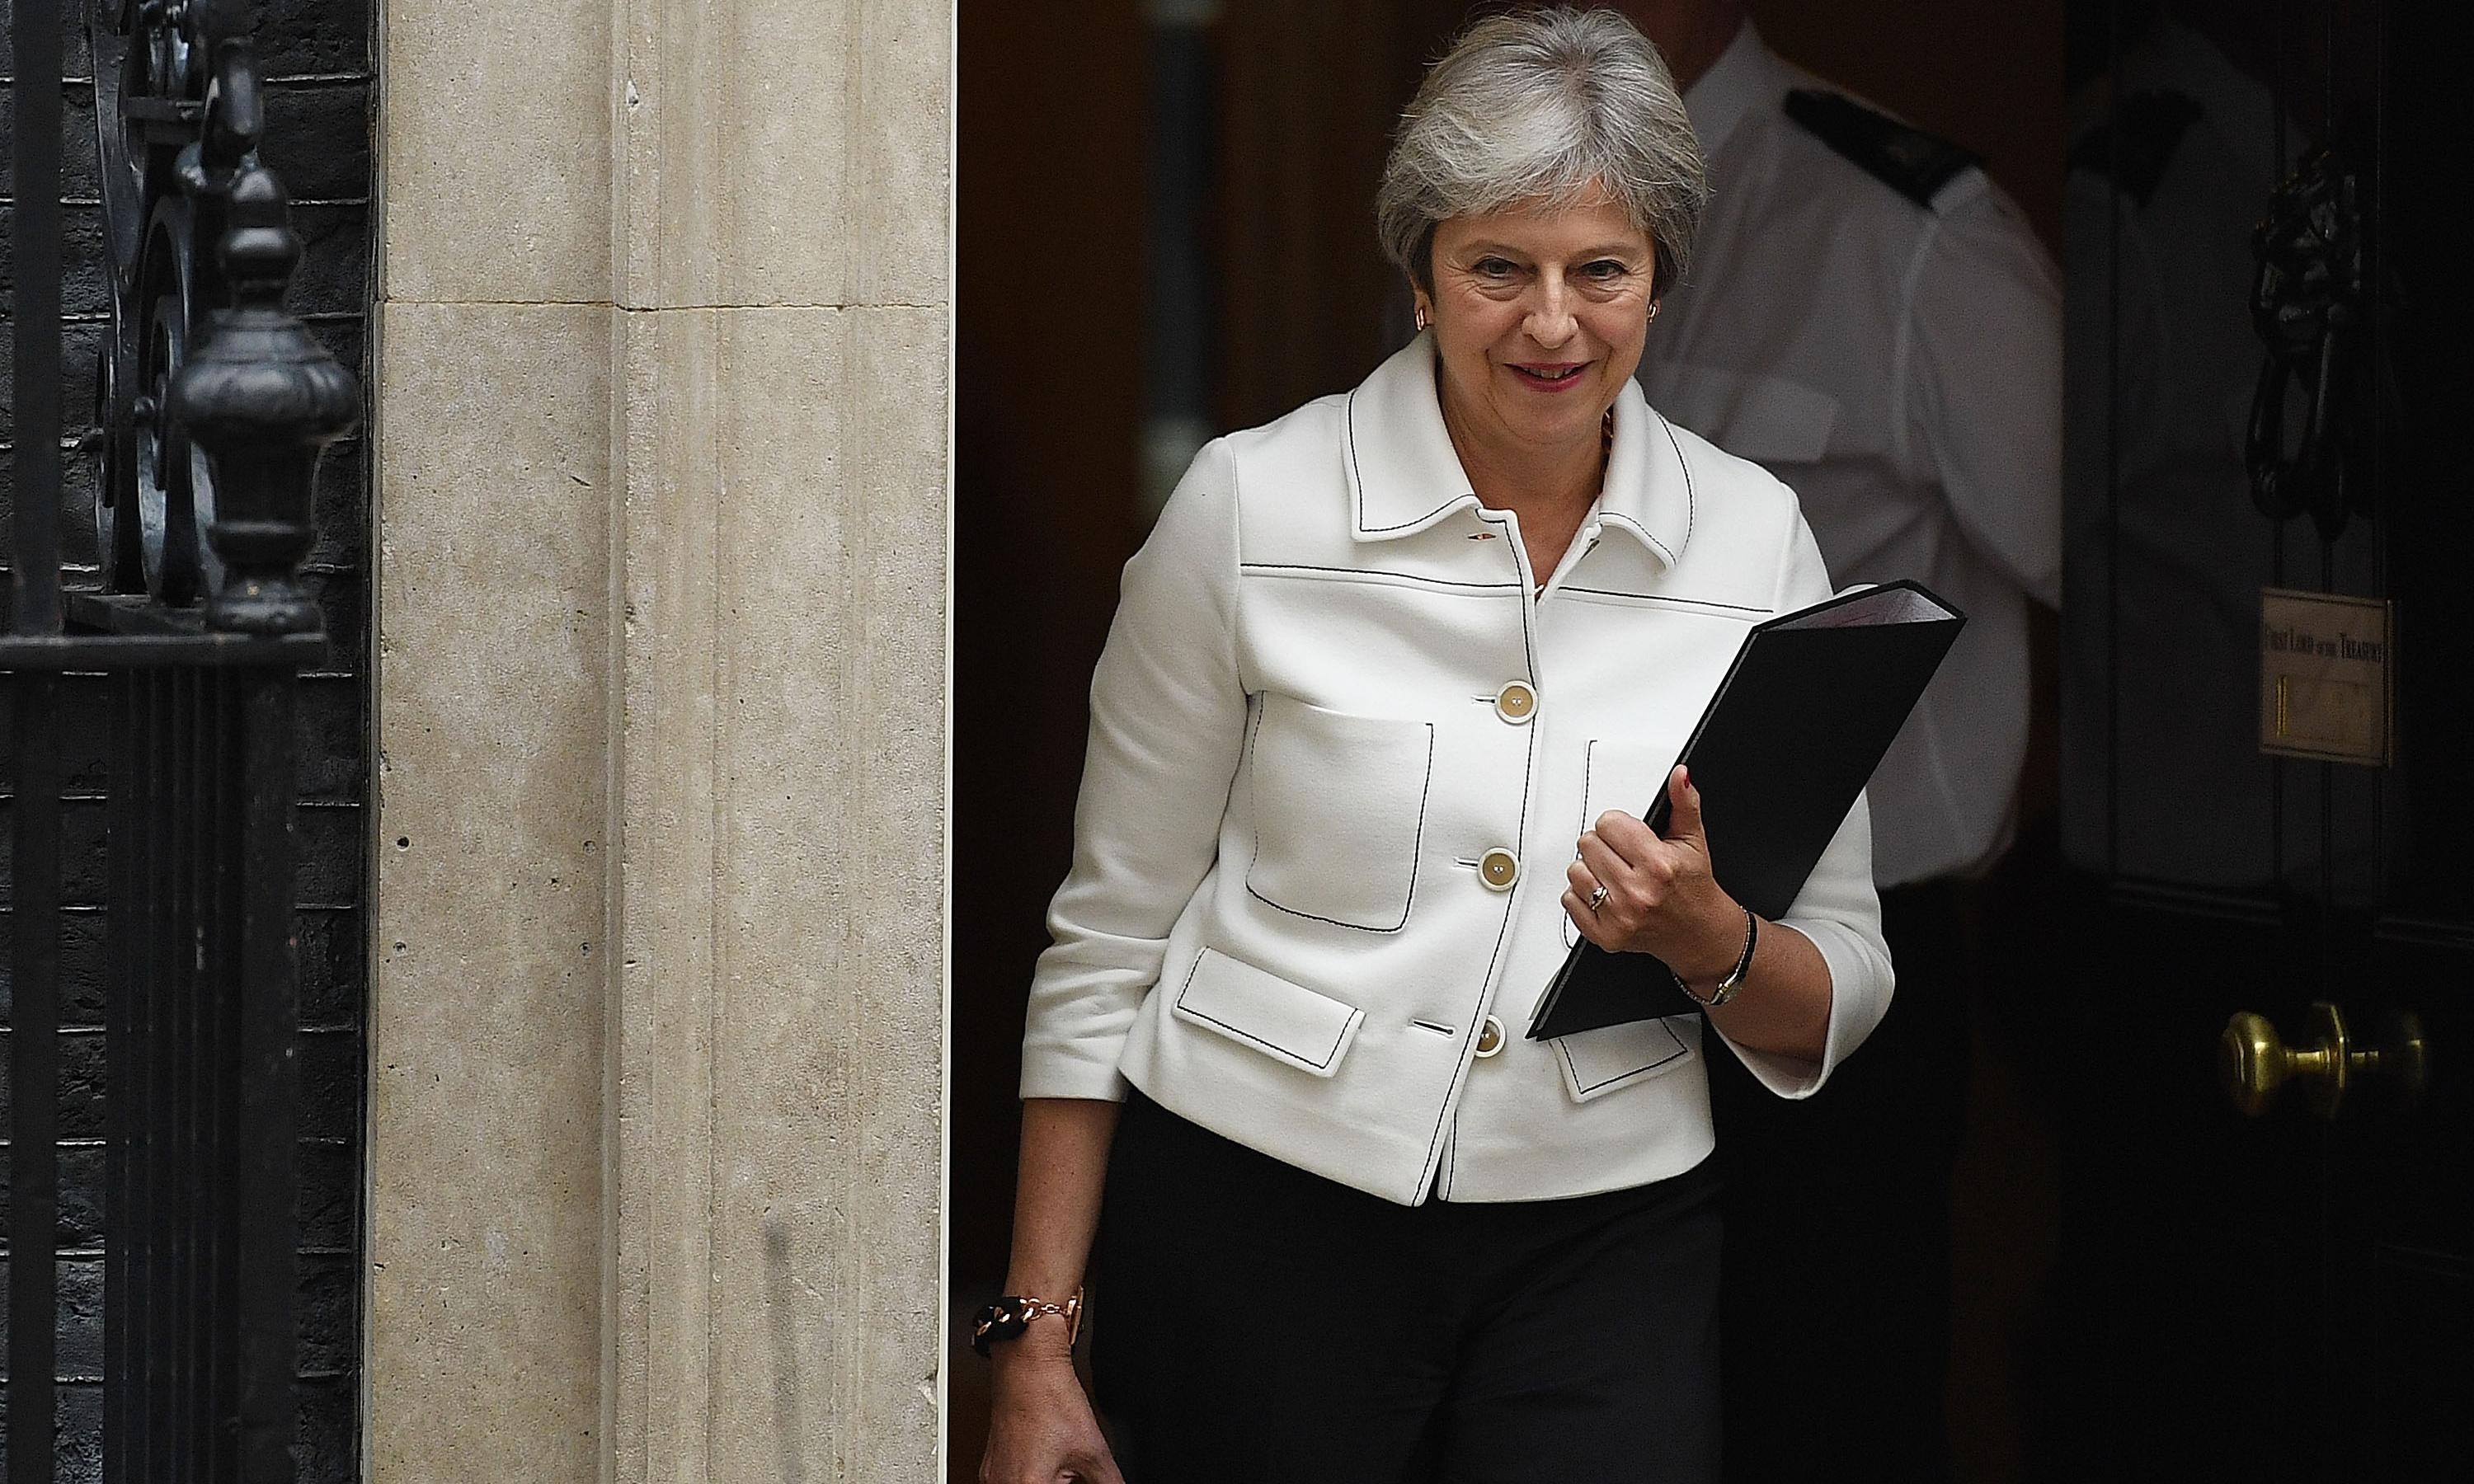 Feel no pity for Theresa May – this Brexit bind is of her own making